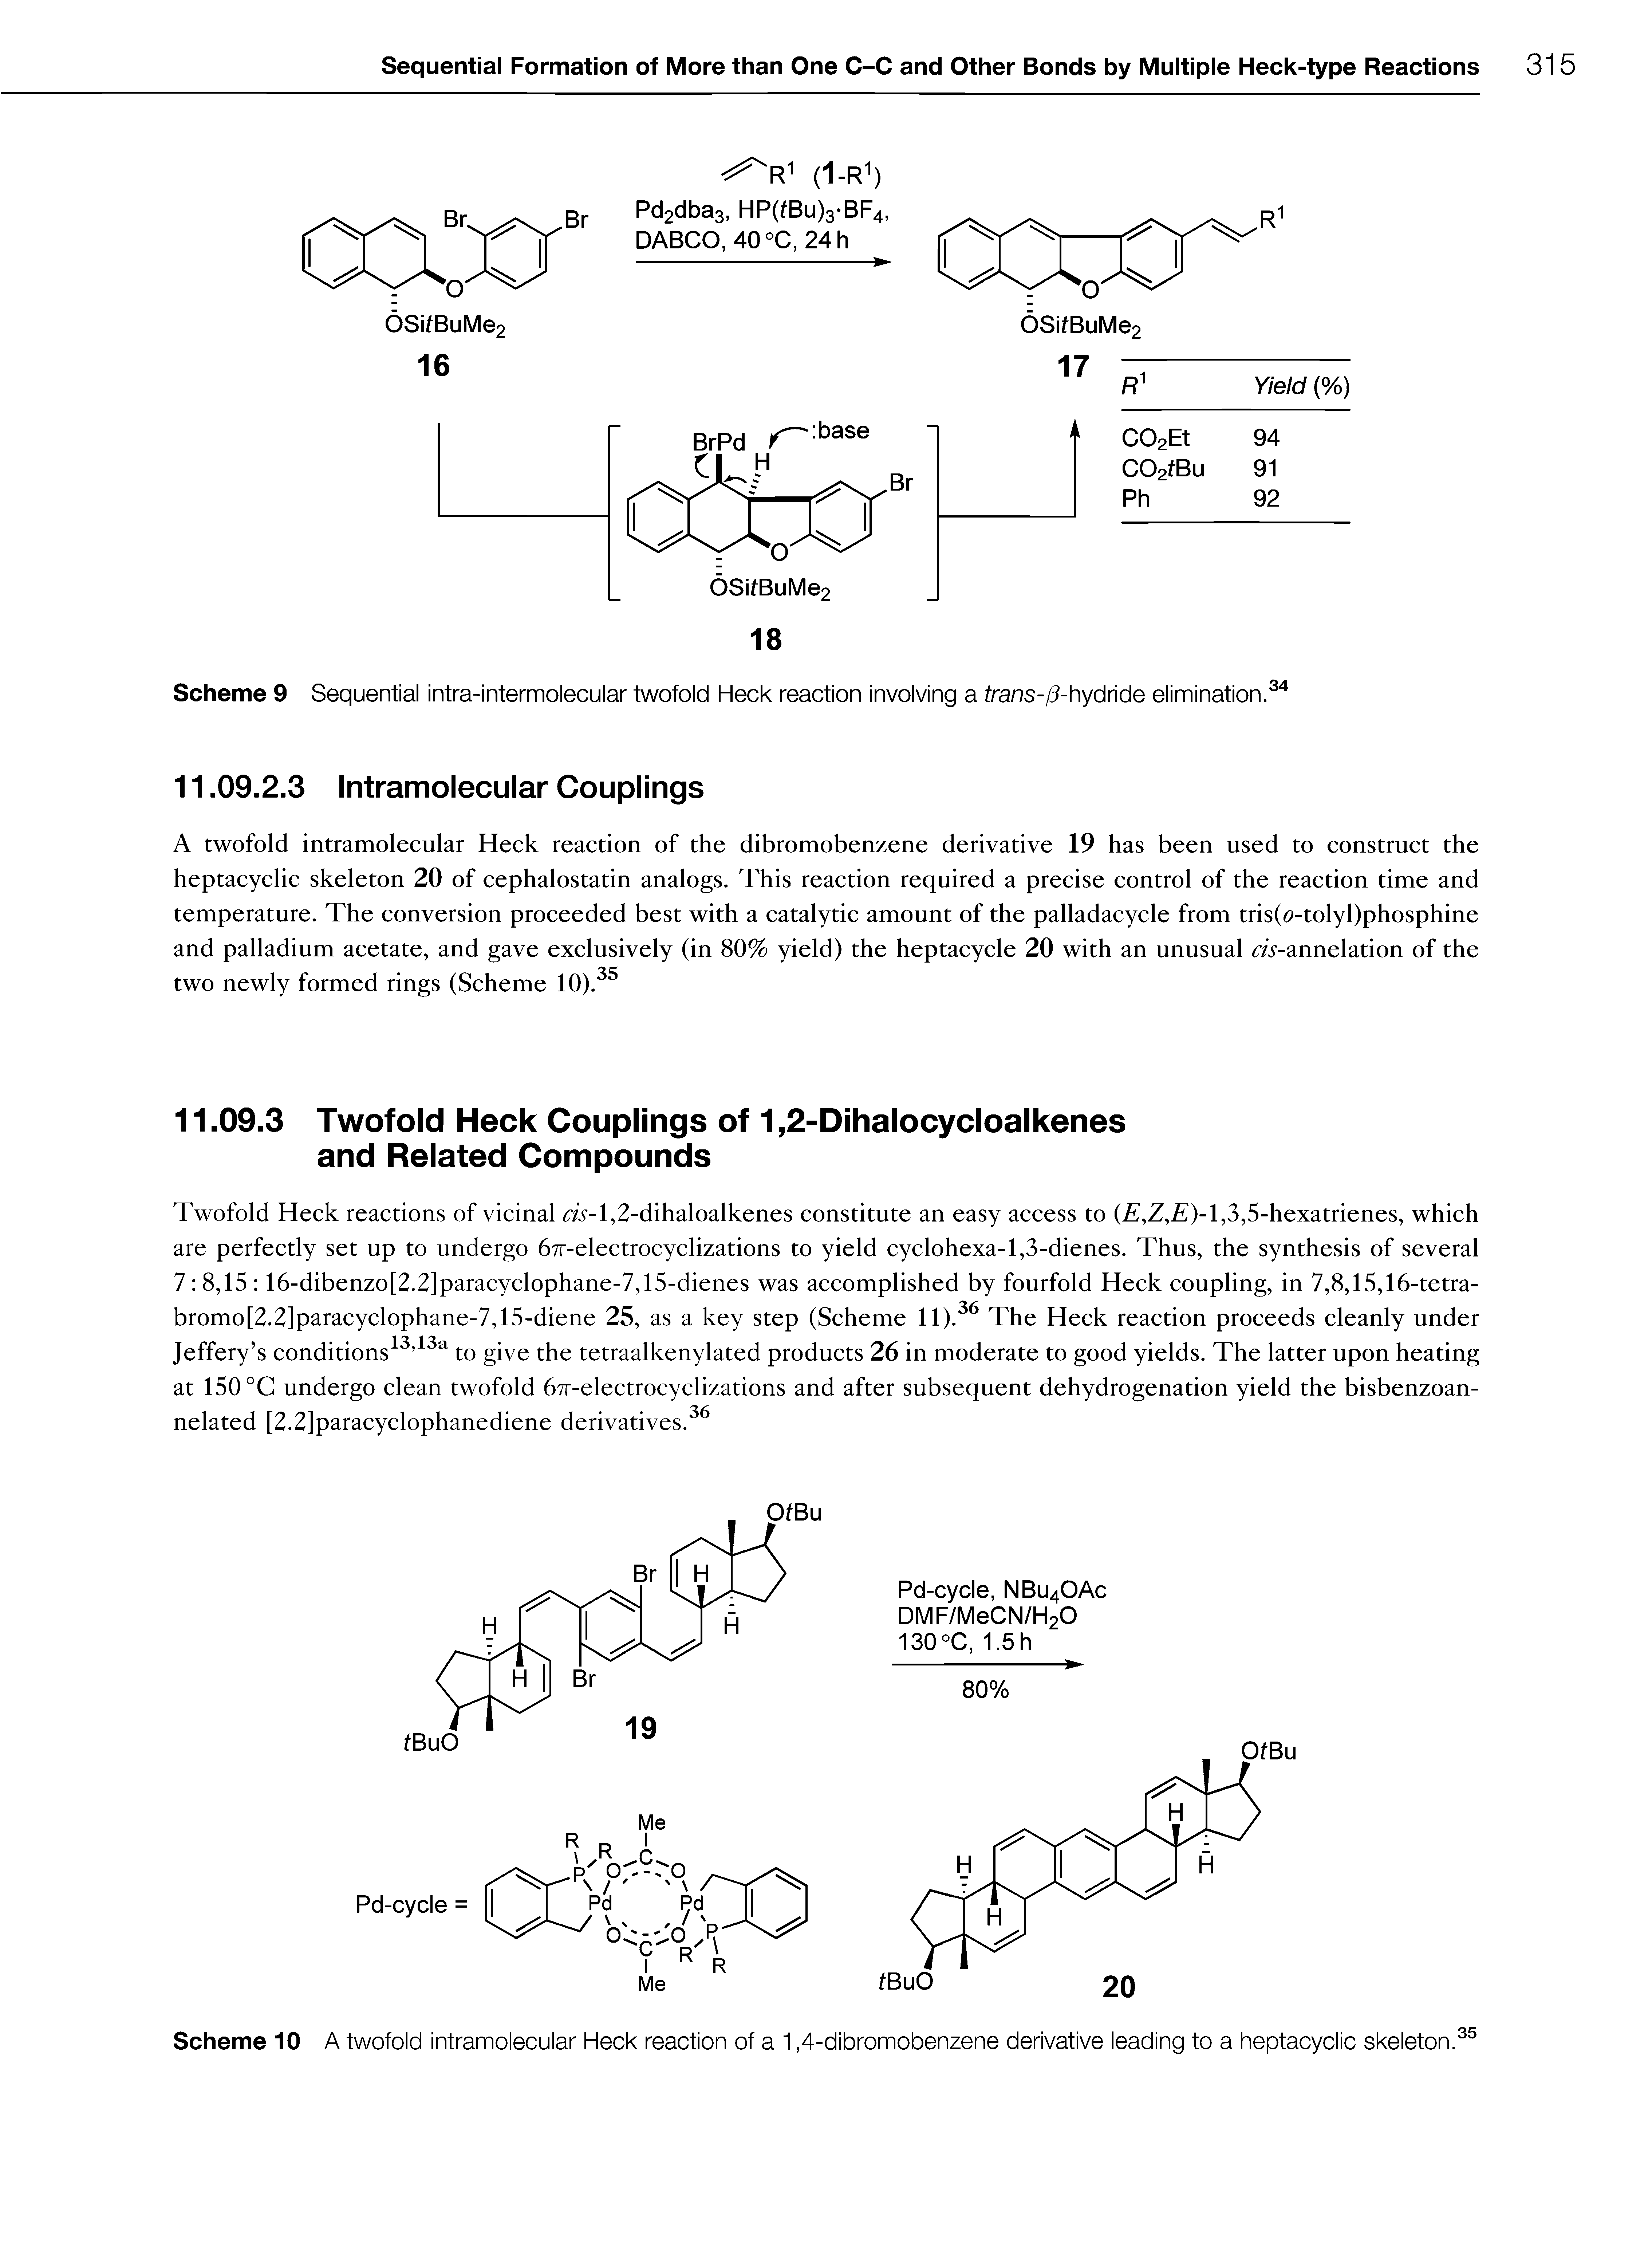 "Scheme 9 Sequential intra-intermolecular twofold <a href=""/info/heck_reaction"">Heck reaction</a> involving a trans-/ -hydride elimination."